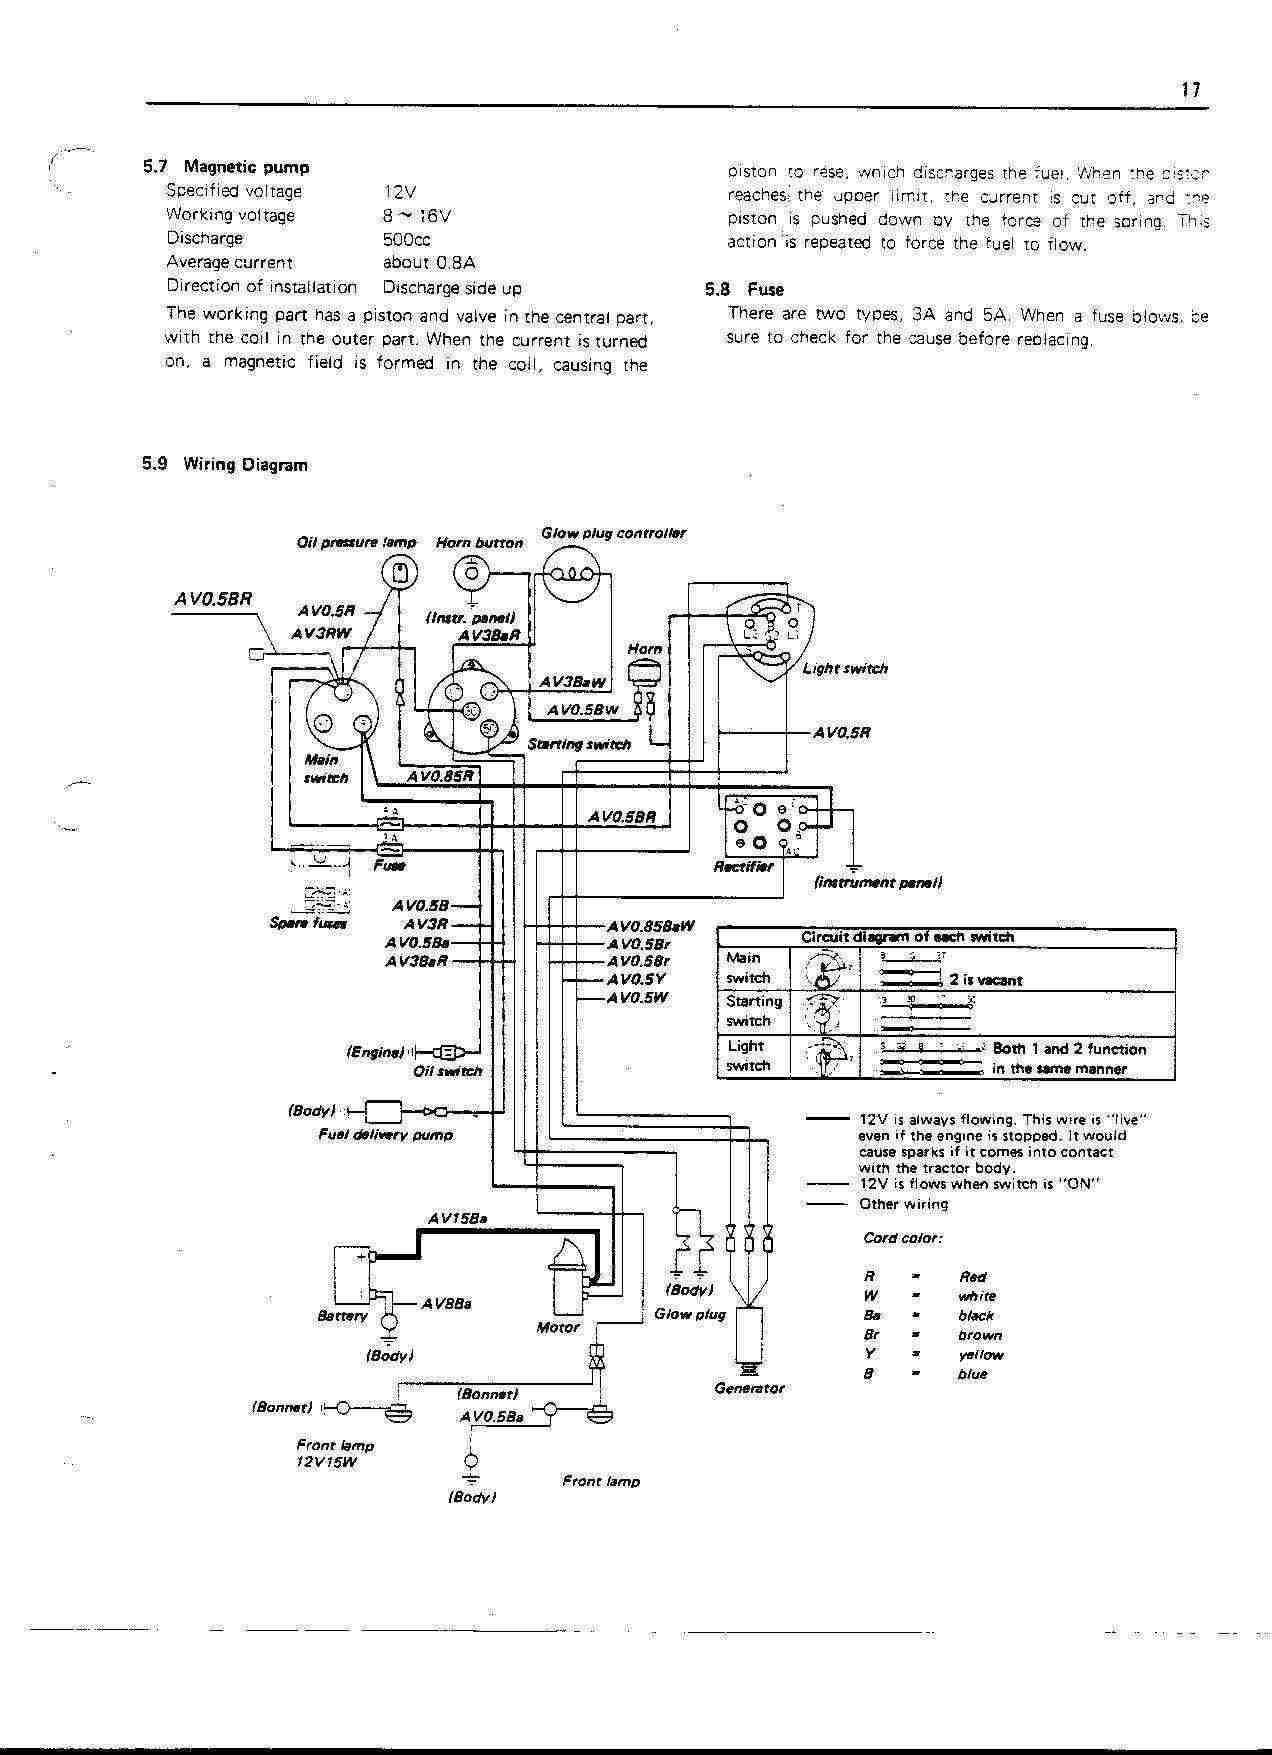 Wiring Diagram For Kubota Zg227. Wiring. Wiring Examples And ... on